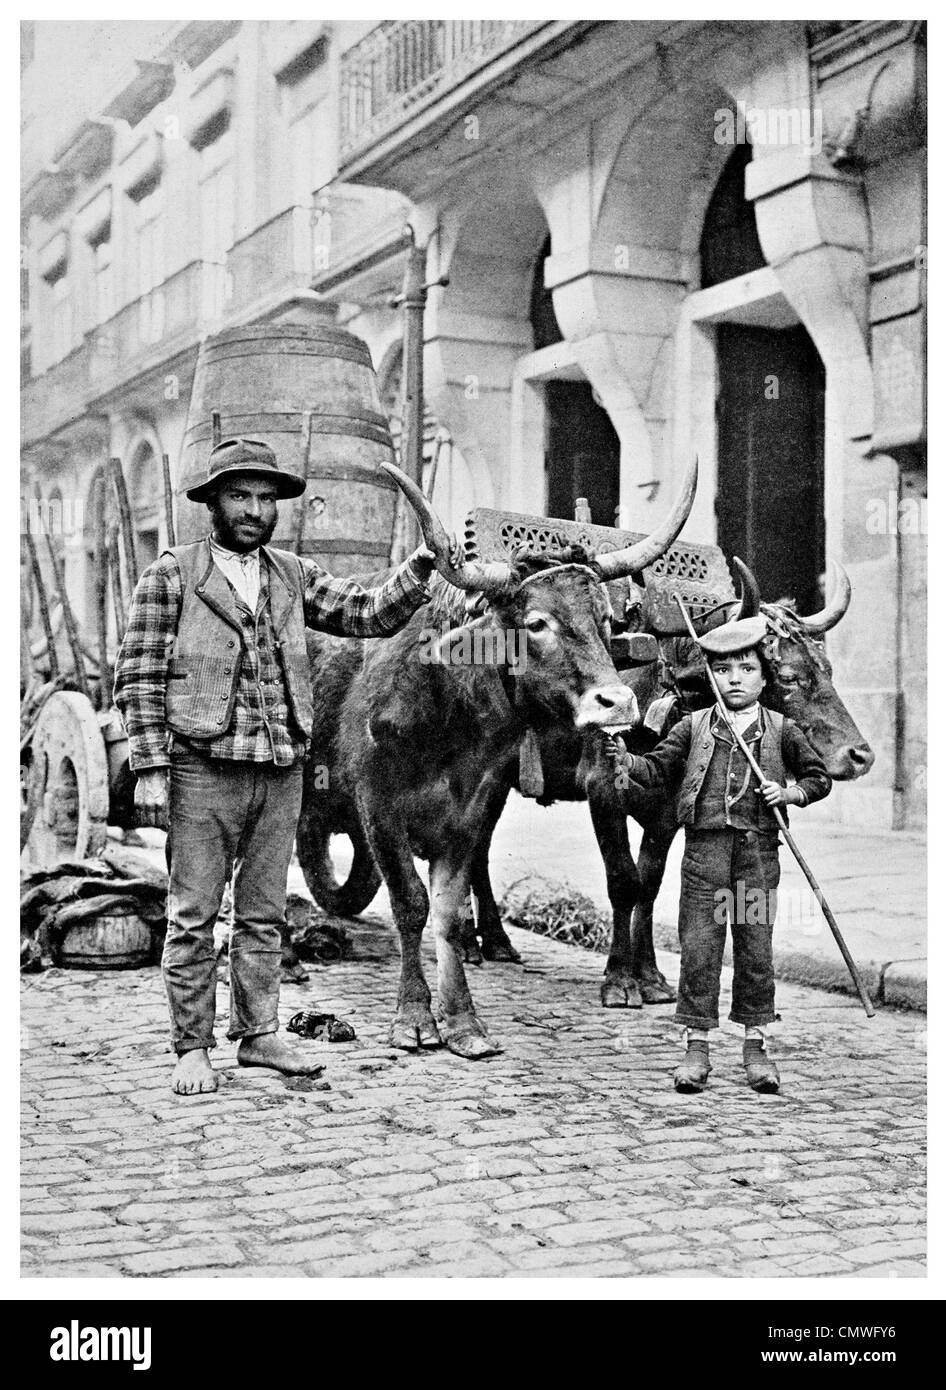 1925 Ox Cart in Oporto Portugal - Stock Image